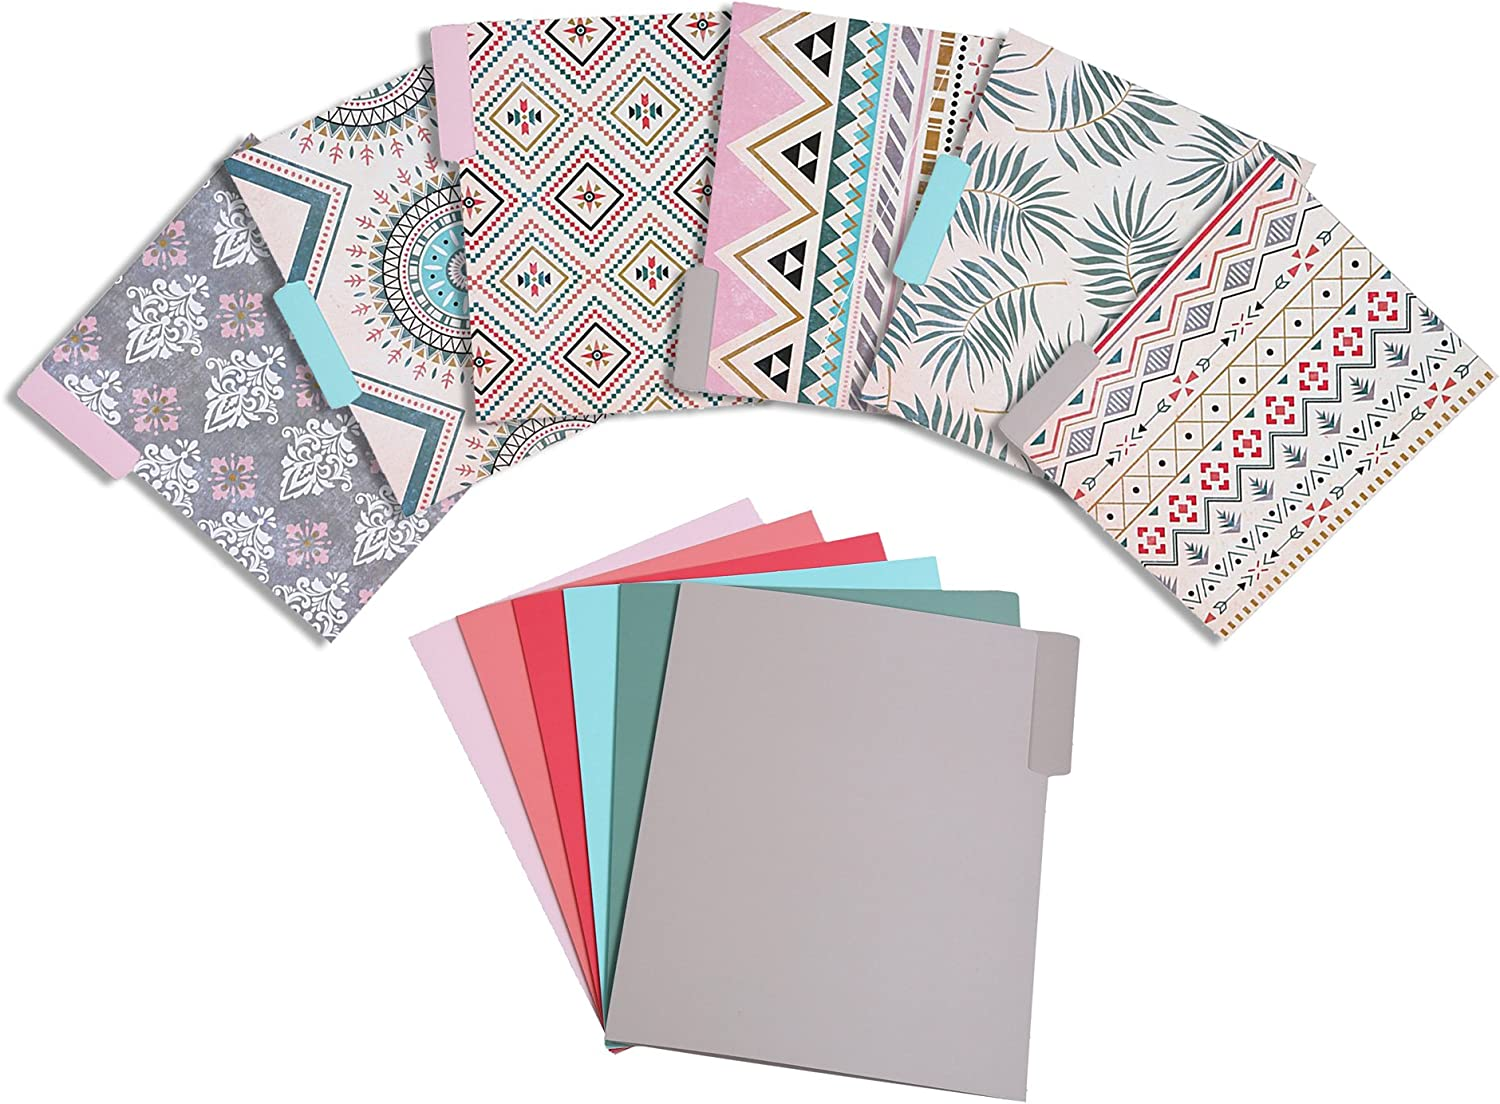 Decorative File Folders, Letter Size (9.5 x 11.5 in, 12 Pack)